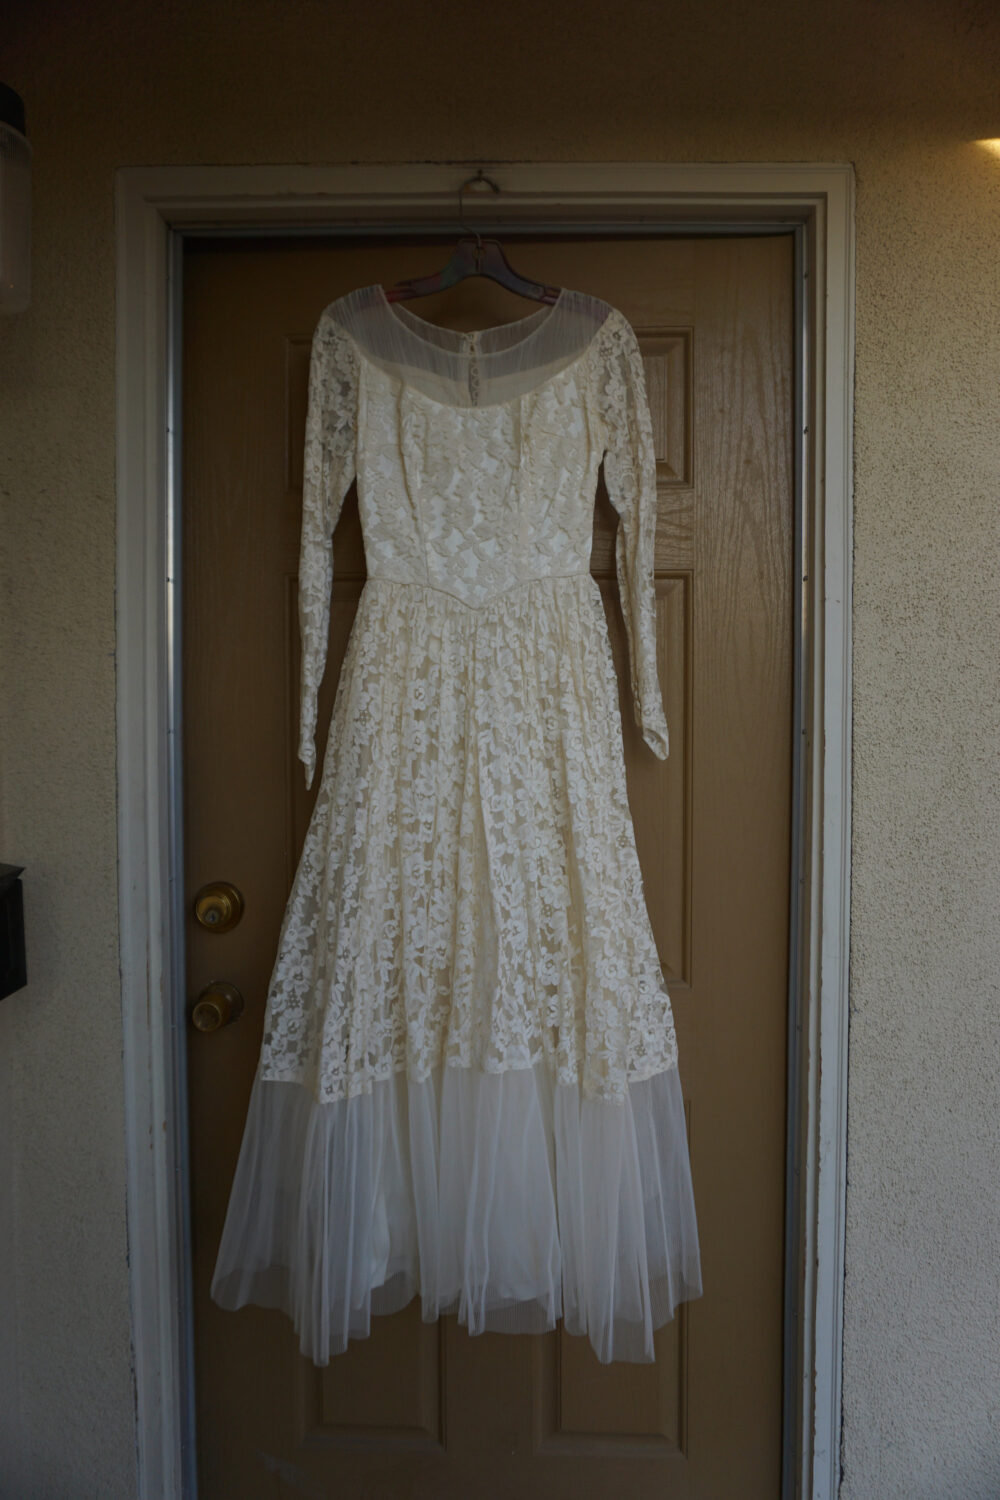 Vintage 1940S 1950S Tulle Wedding Gown Dress Fits S Small 40S 50S Layered Layers Fuffles